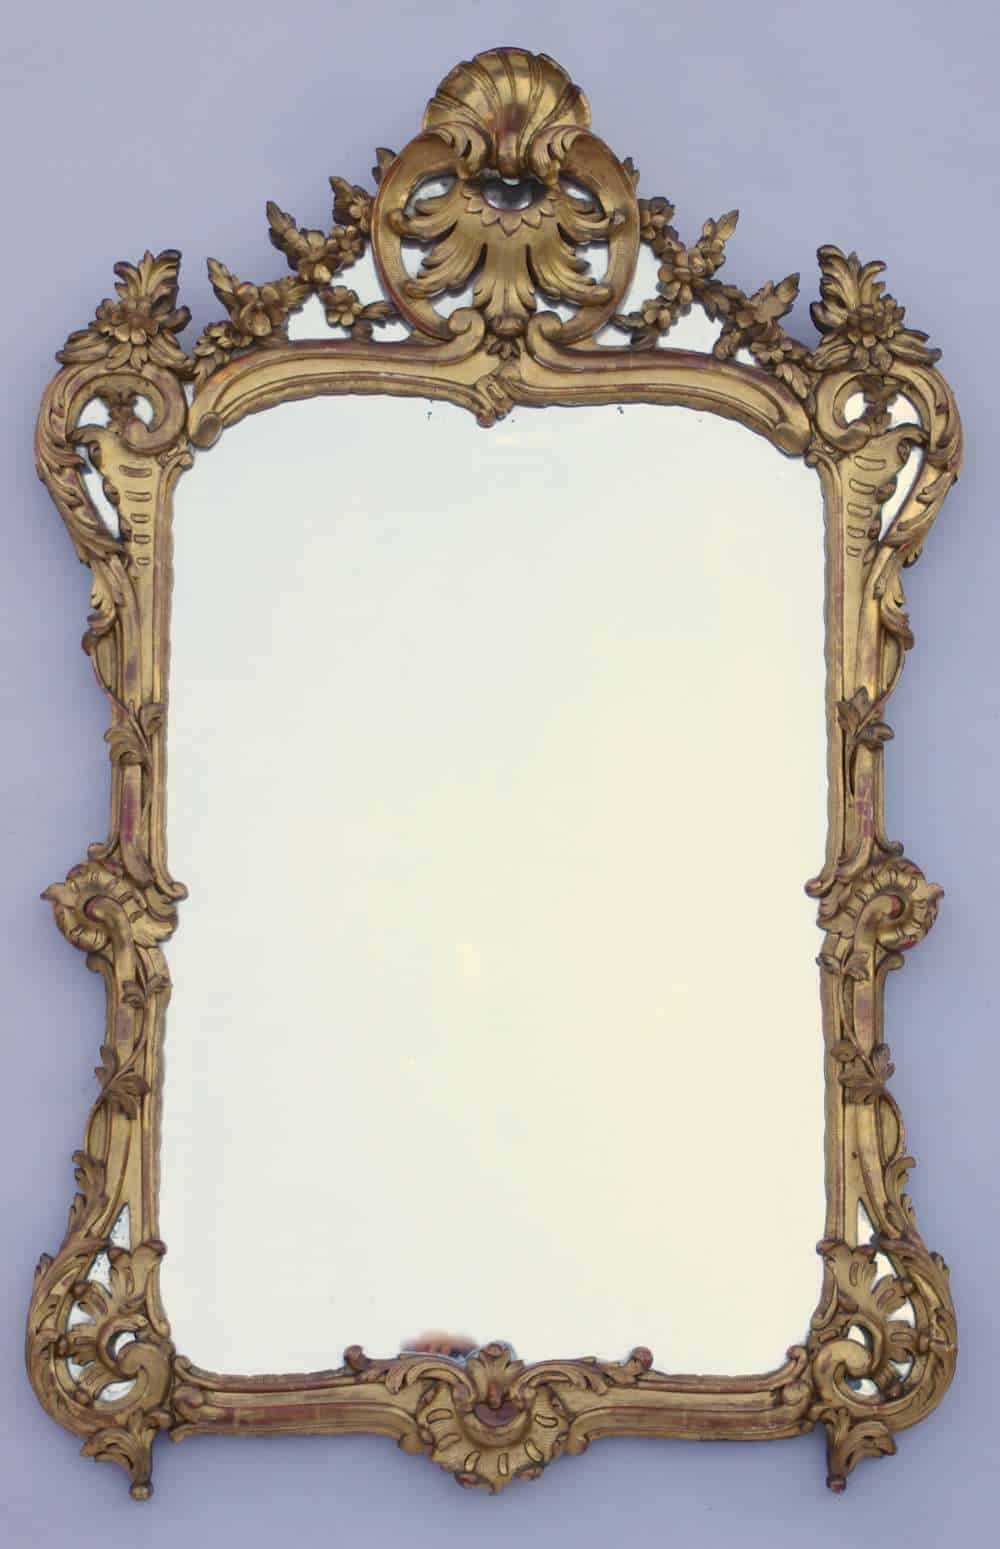 Le march biron miroir louis xv parecloses de bois dor for Miroir louis xv